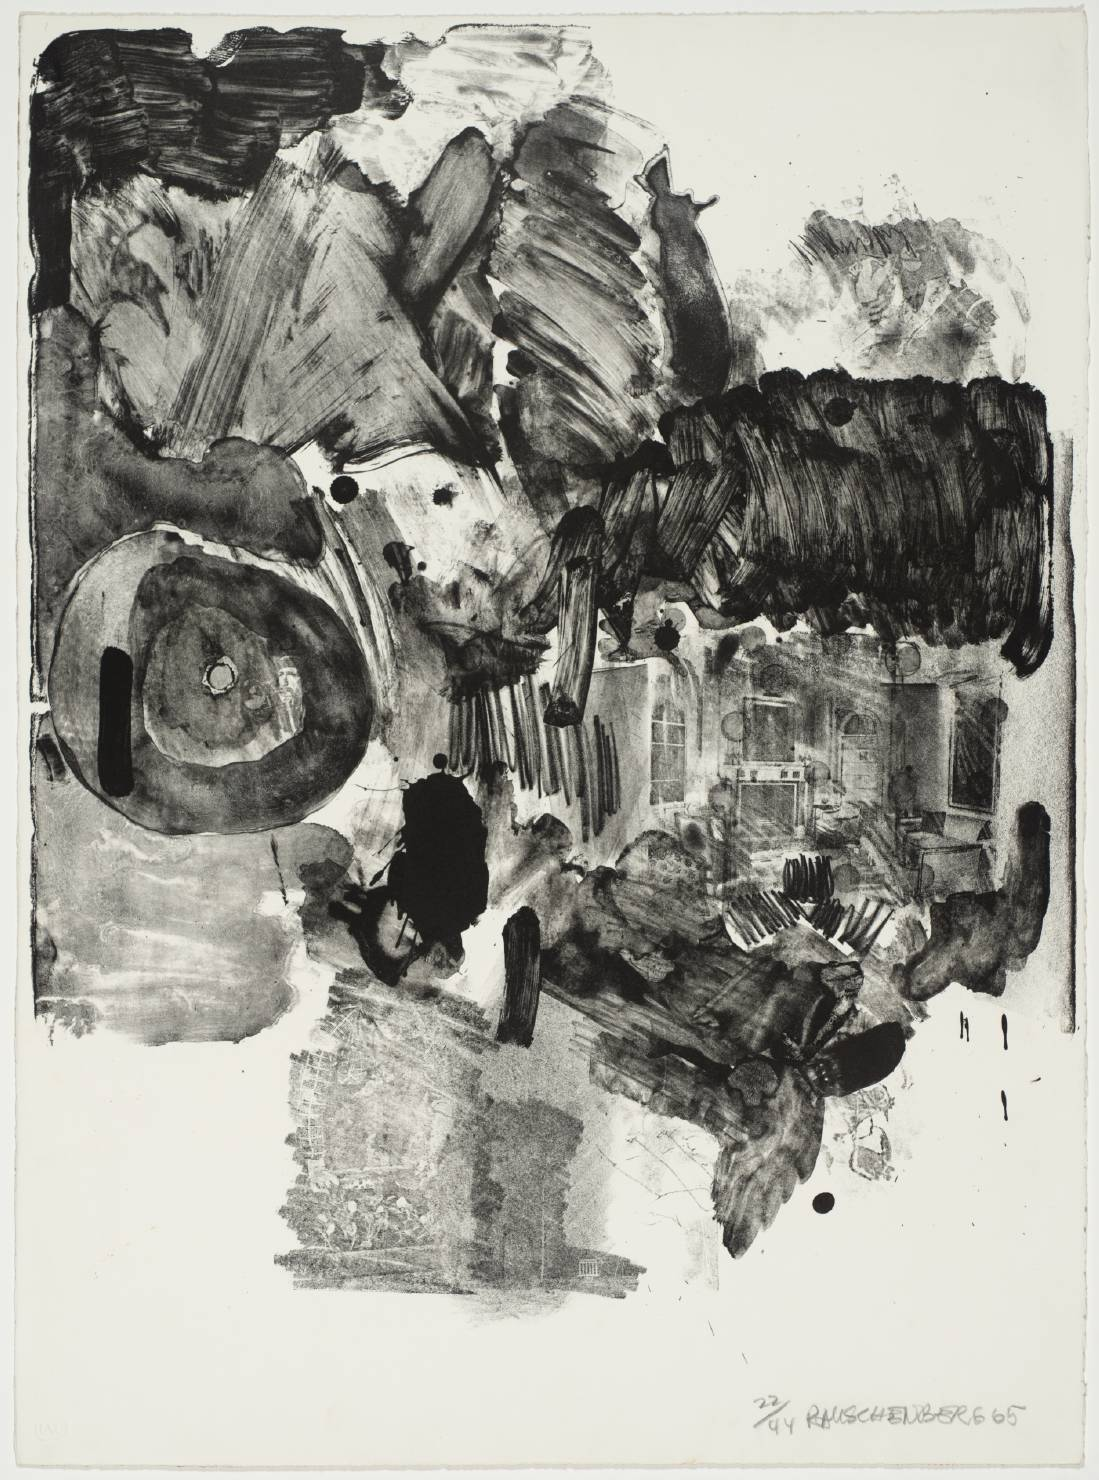 Robert Rauschenberg - Visitation II, 1965. Lithograph on paper